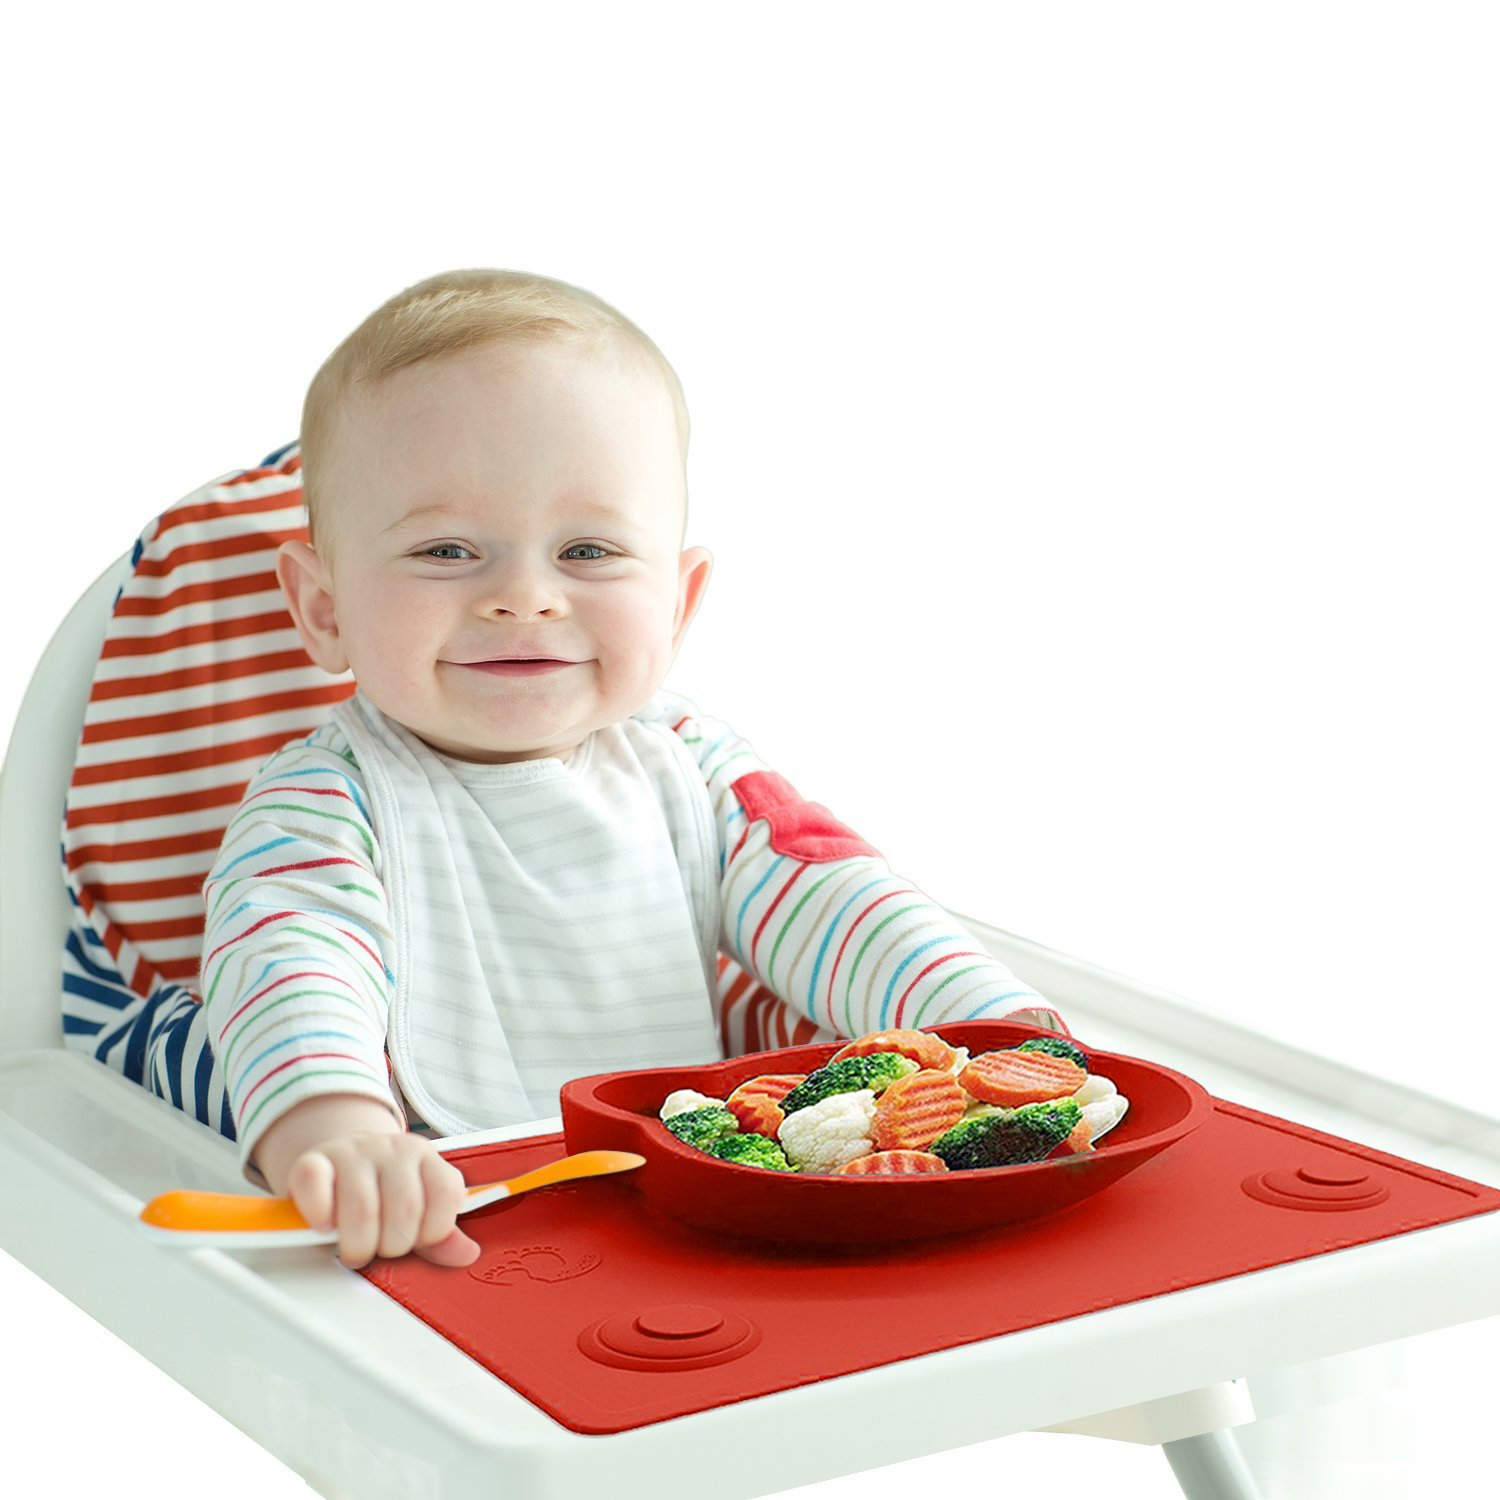 Baby High Chair Feeding Placemat - Portable Meal Tray / Infant Led Weaning Bowl with Extra Suction Pads ensuring No Mess - BPA & Toxic Free Chuckle